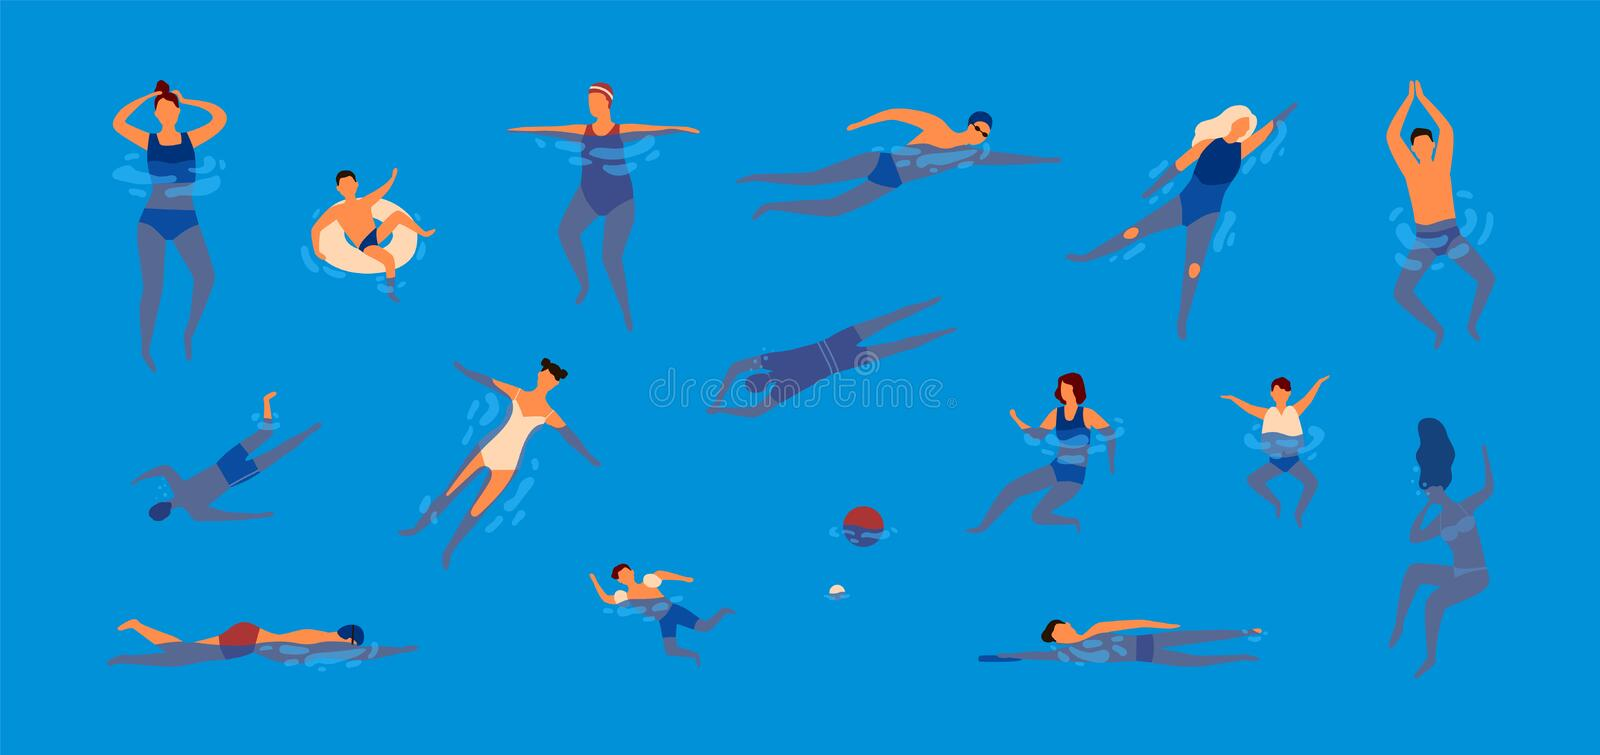 Collection of people dressed in swimwear in swimming pool. Bundle of men and women in swimsuits performing water royalty free illustration